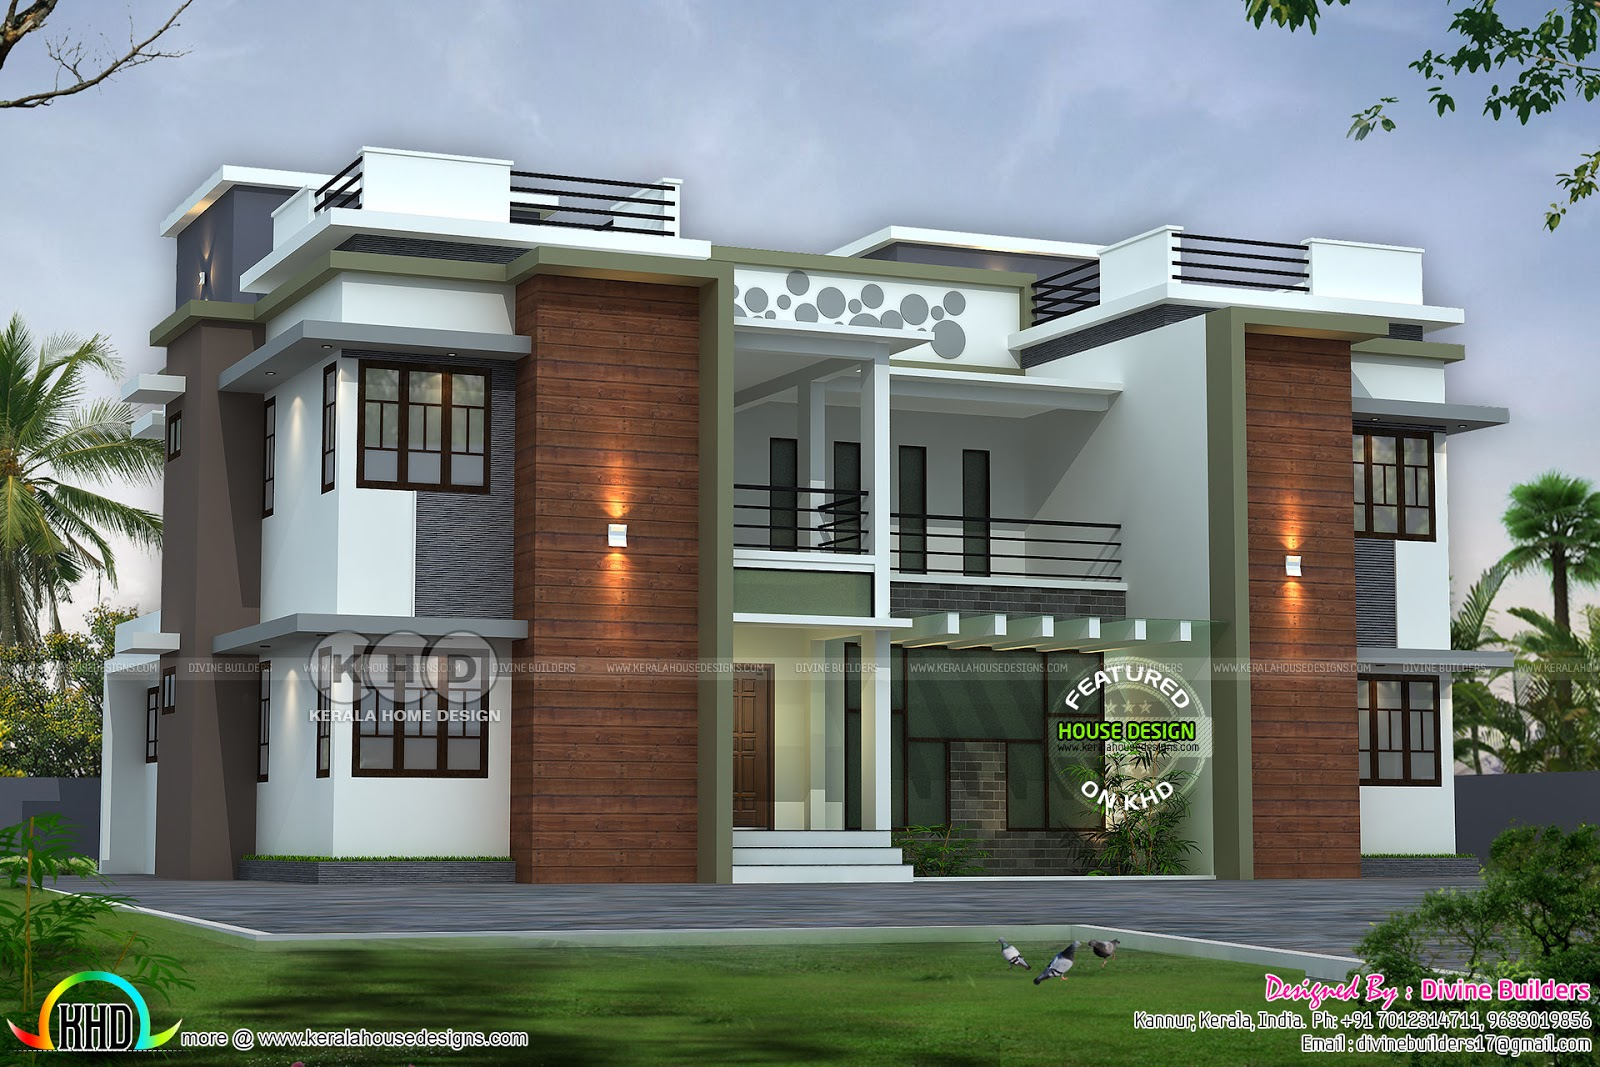 6 bedroom flat roof home design - Kerala home design and ...